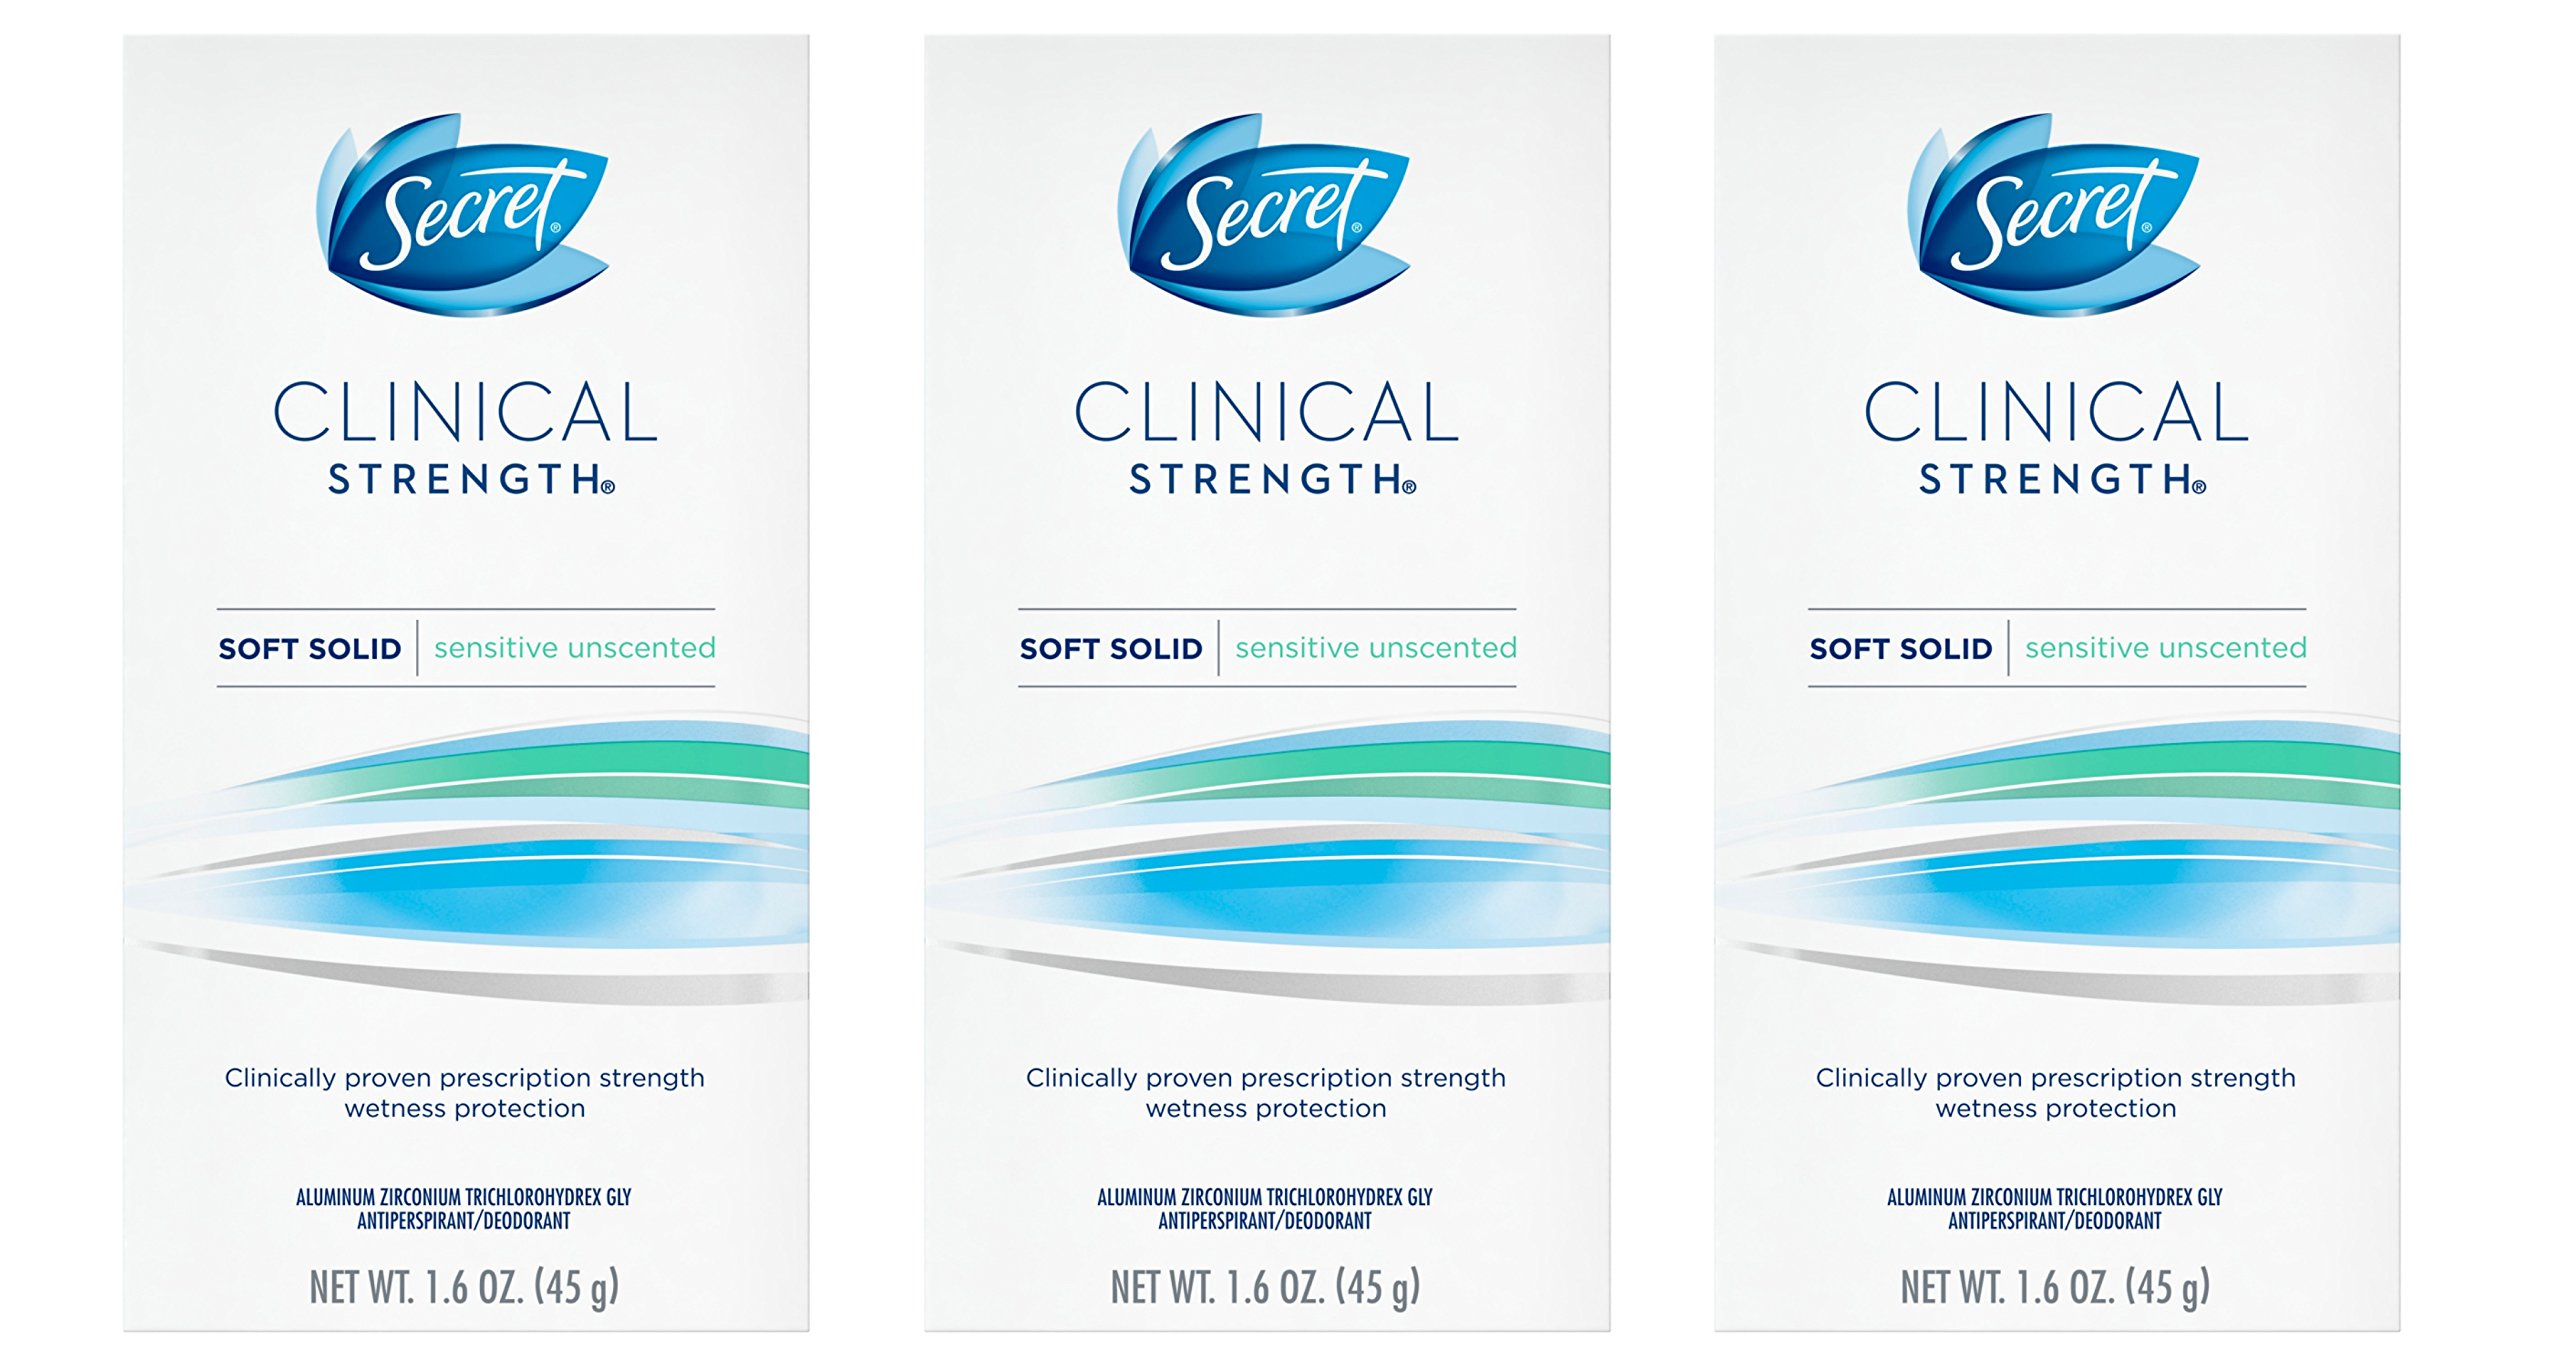 Secret Clinical Strength Deodorant and Antiperspirant for Women, Soft Solid, Sensitive Unscented, 1.6 Oz, (Pack of 3)